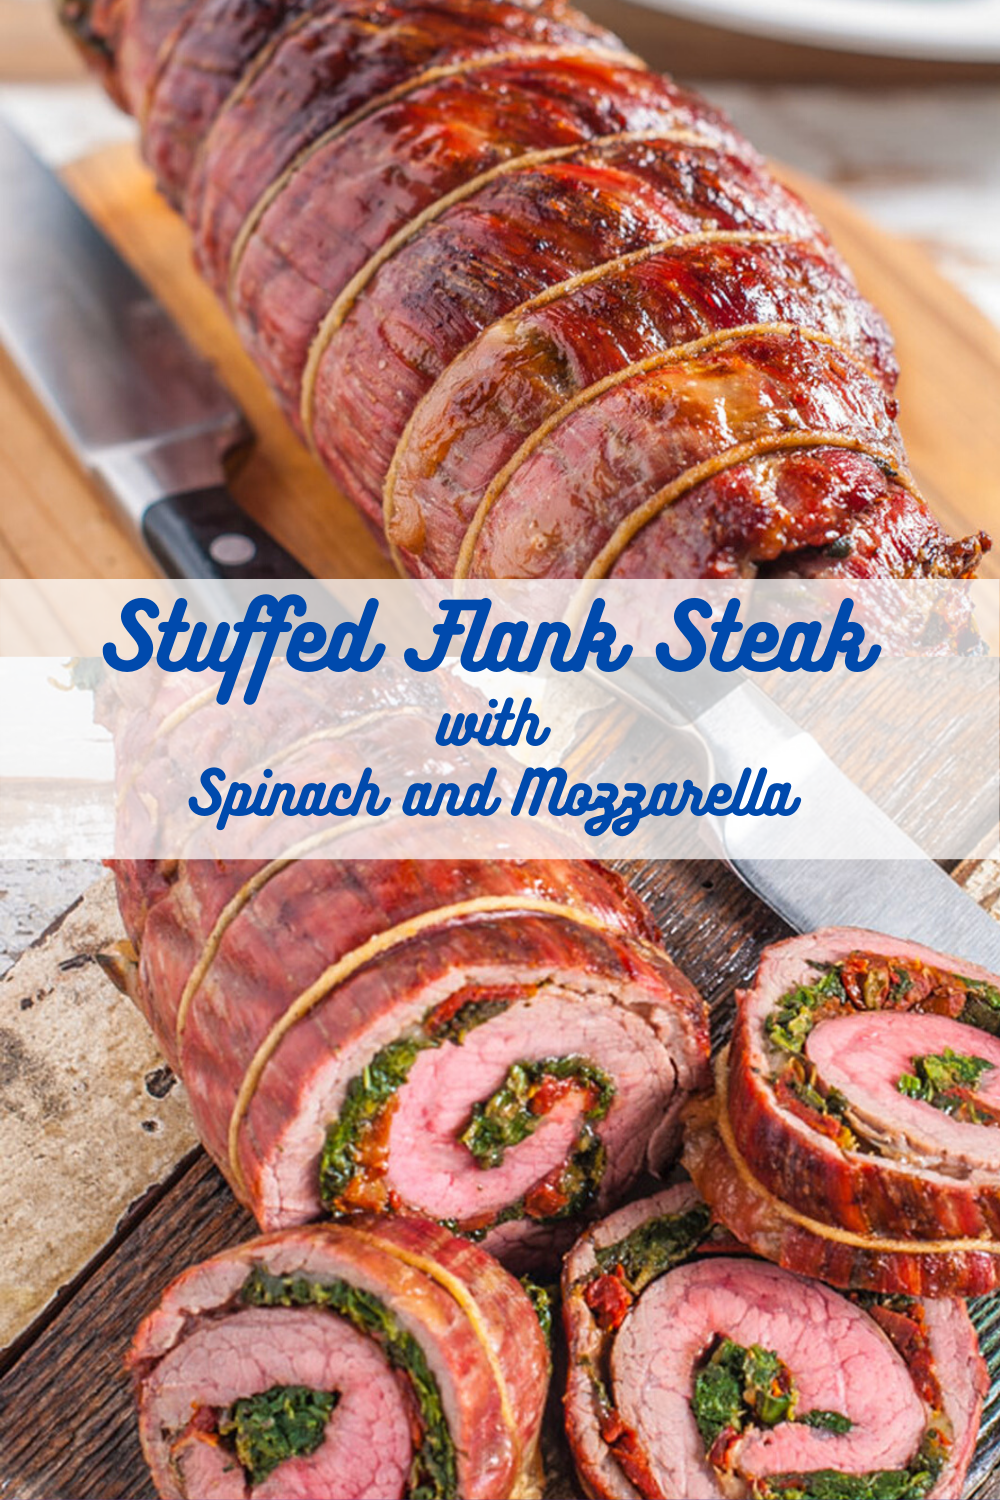 Stuffed Flank Steak with Spinach and Mozzarella